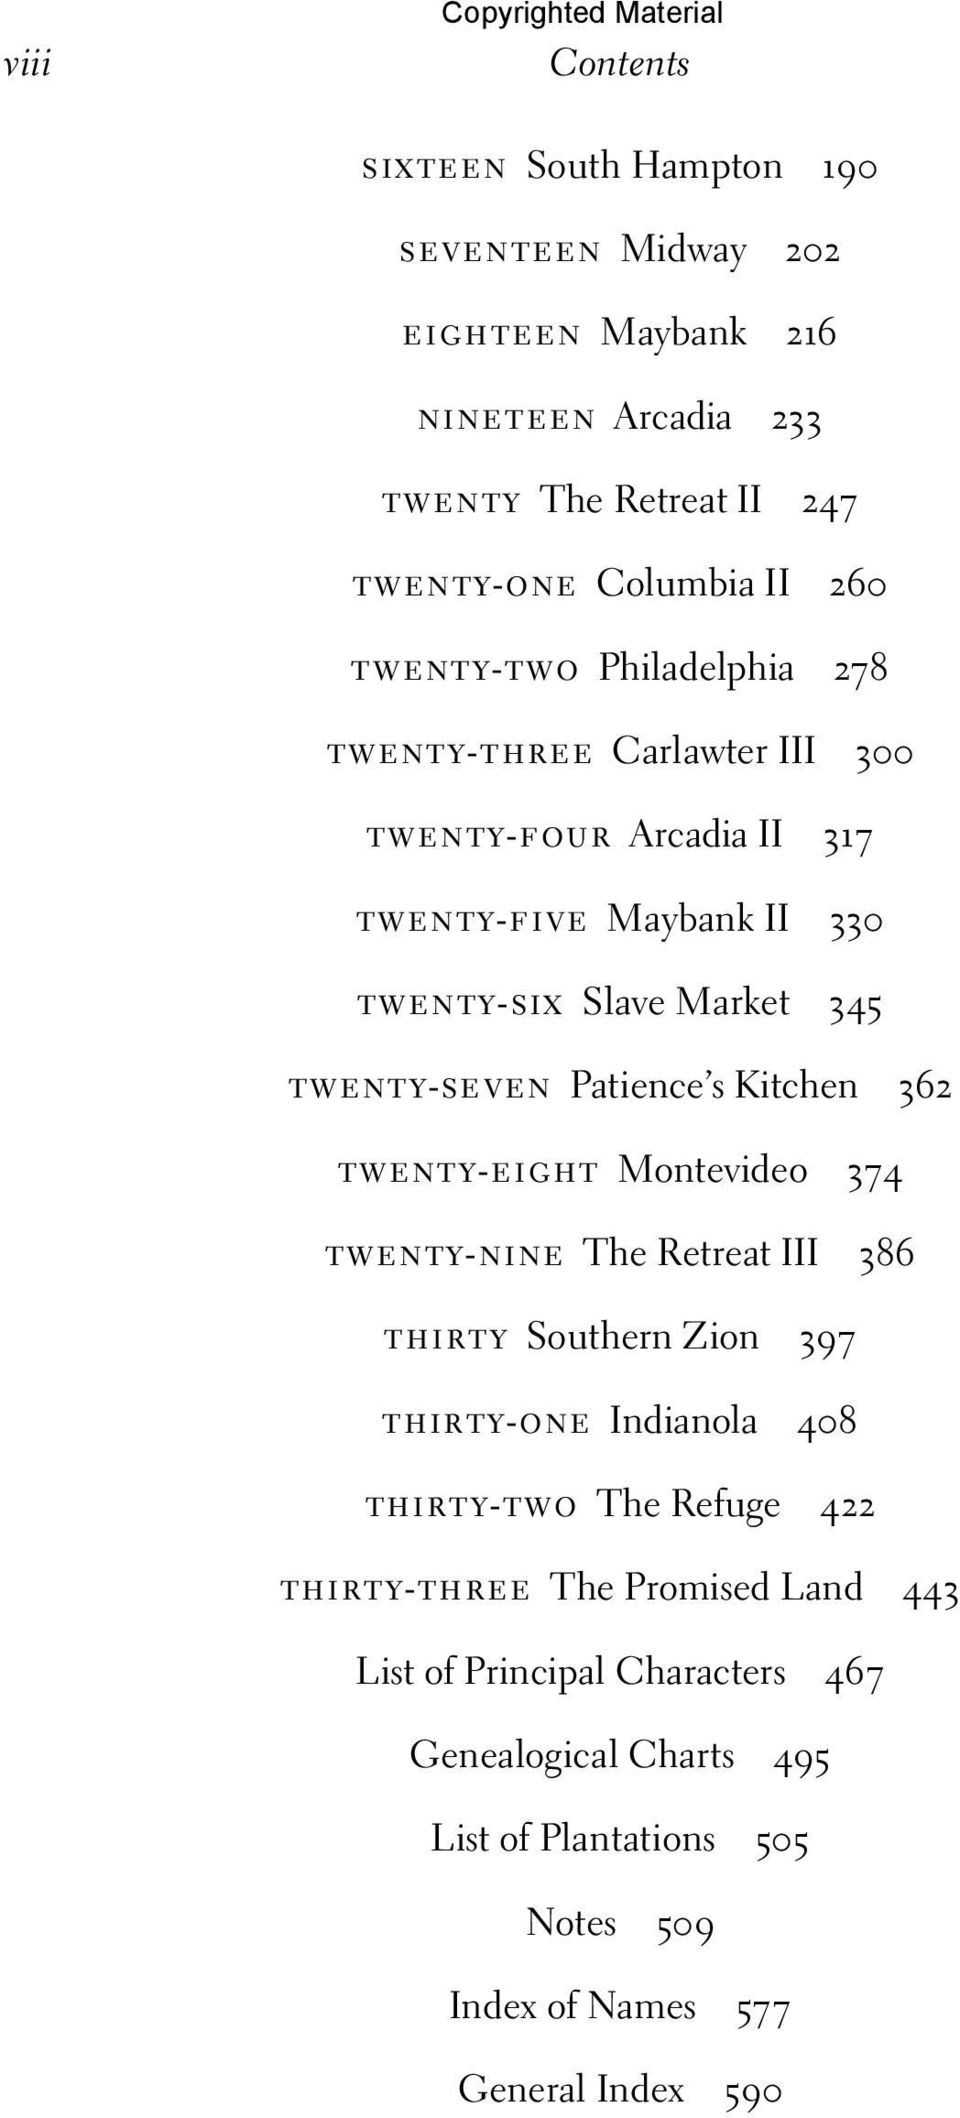 twenty-seven Patience s Kitchen 362 twenty-eight Montevideo 374 twenty-nine The Retreat III 386 thirty Southern Zion 397 thirty-one Indianola 408 thirty-two The